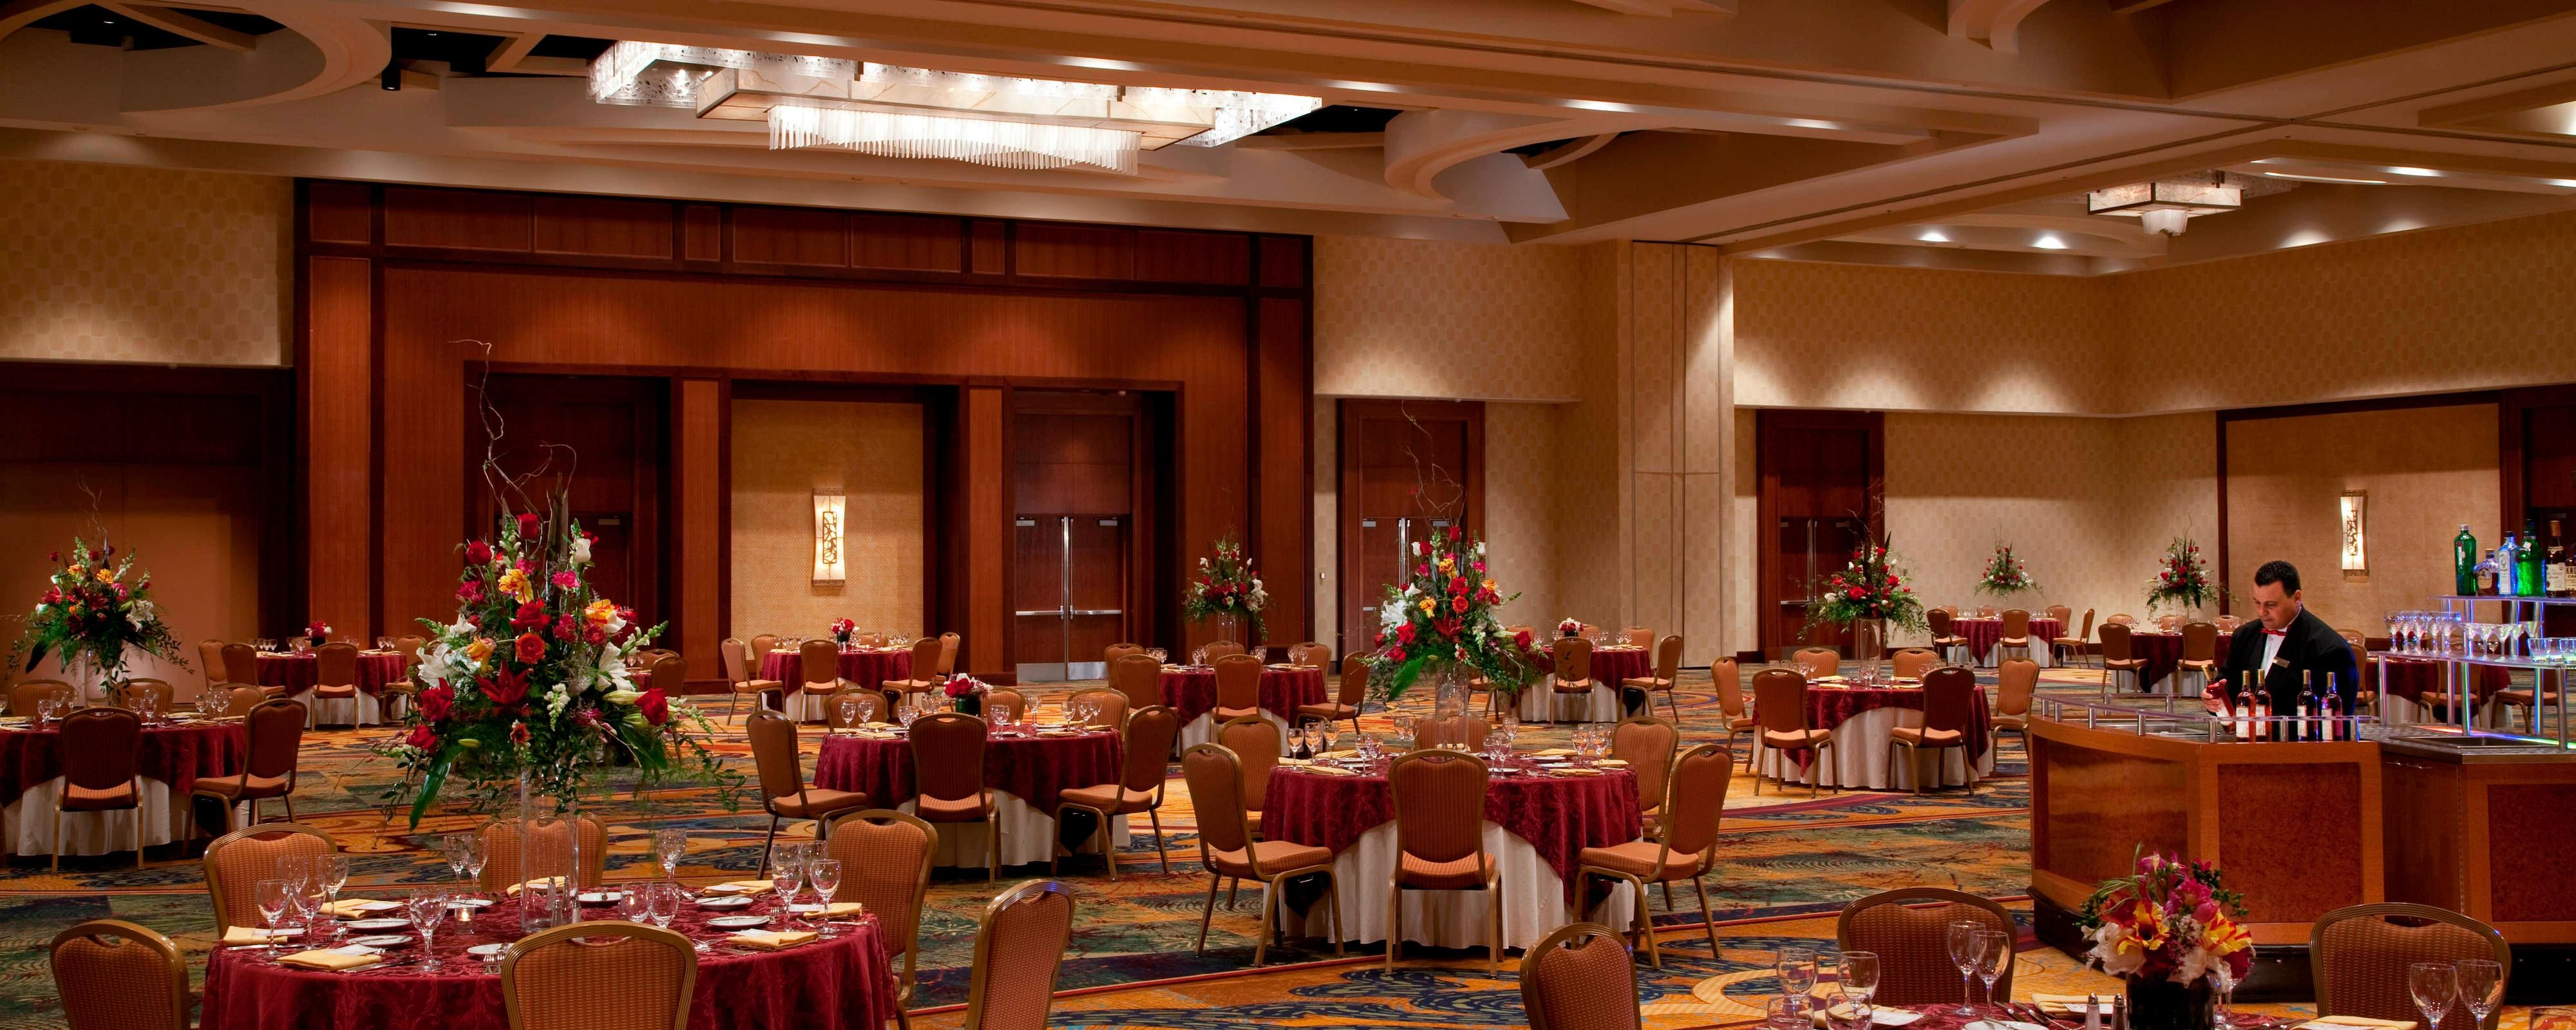 Aaa San Antonio >> San Antonio River Walk Wedding Venues | San Antonio Marriott Rivercenter